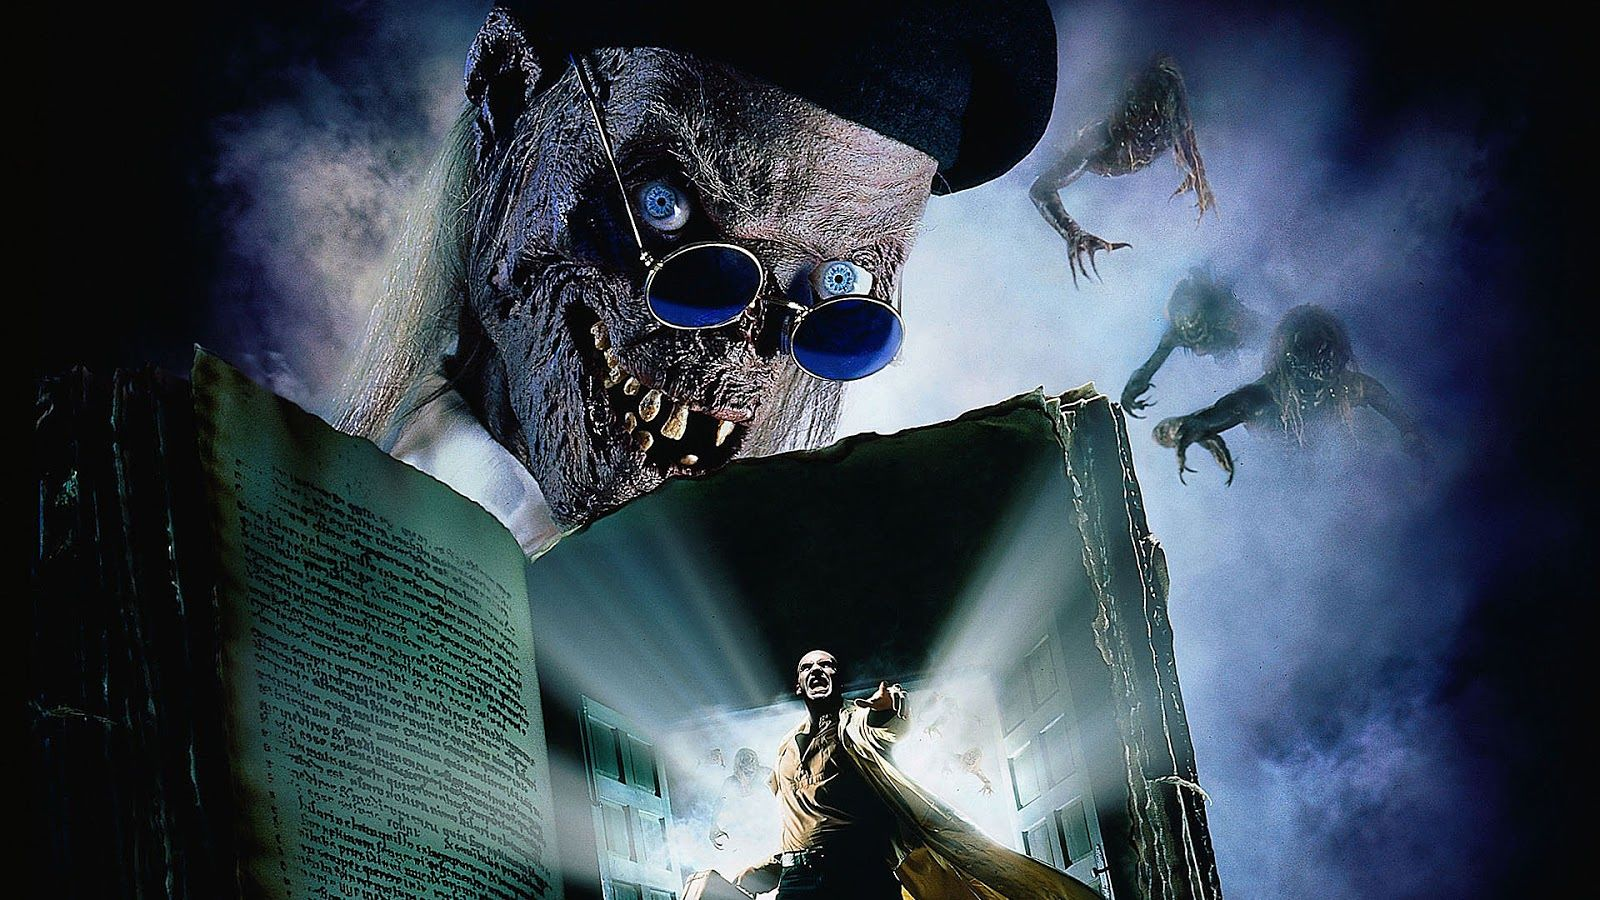 Adventure Story Ideas tales from the crypt reboot crowdsourcing story ideas, so